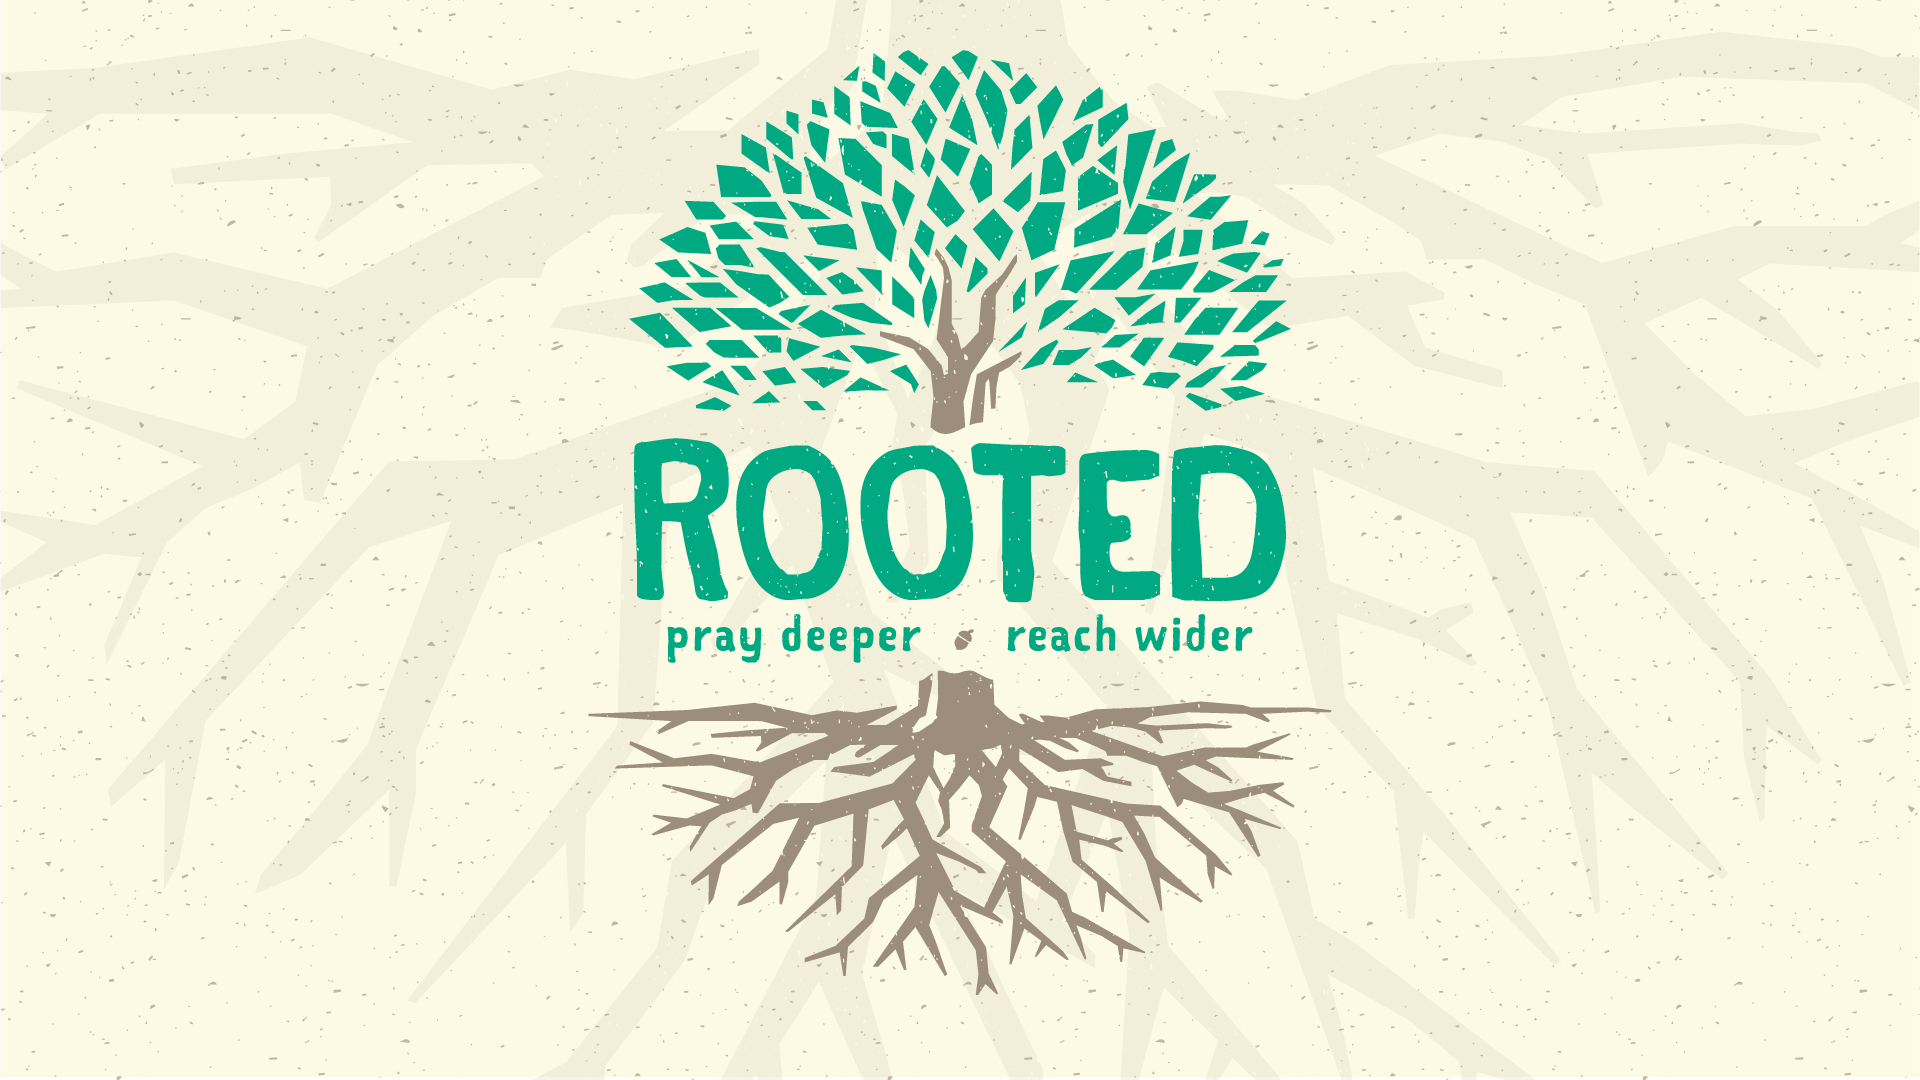 Rooted in Spiritual Growth